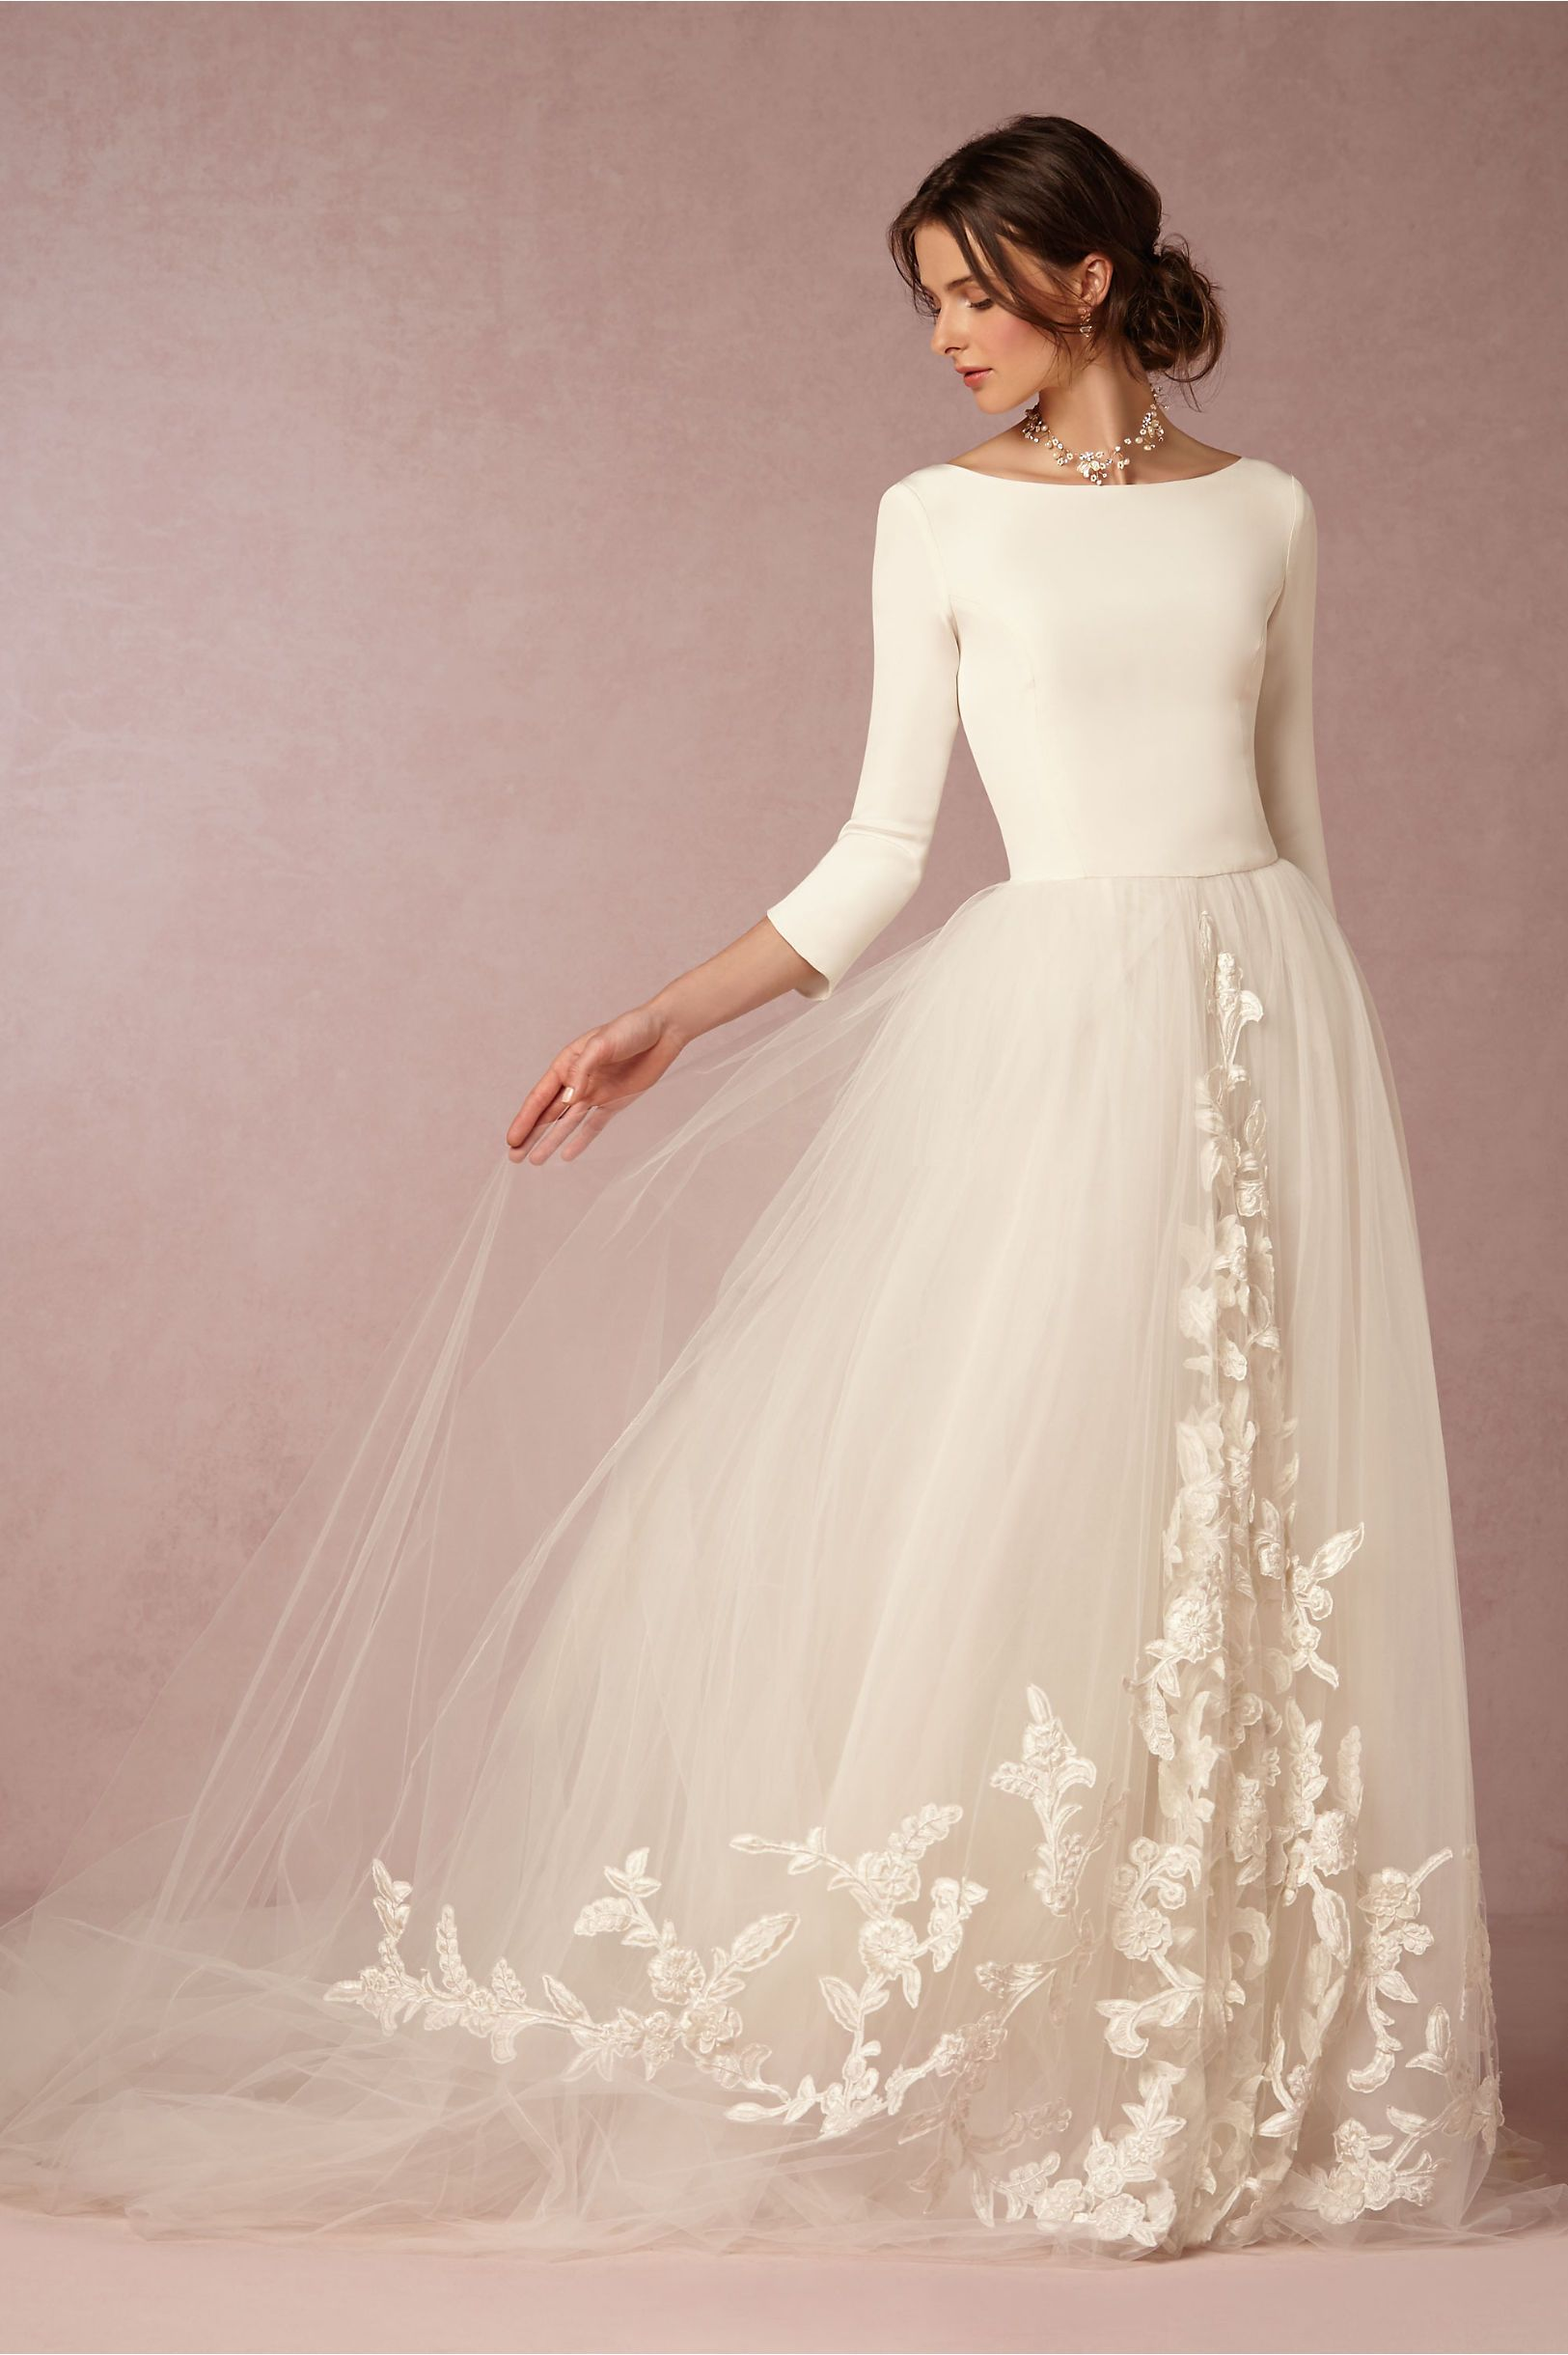 3a7a1d6598 21 Ridiculously Stunning Long Sleeved Wedding Dresses to Covet